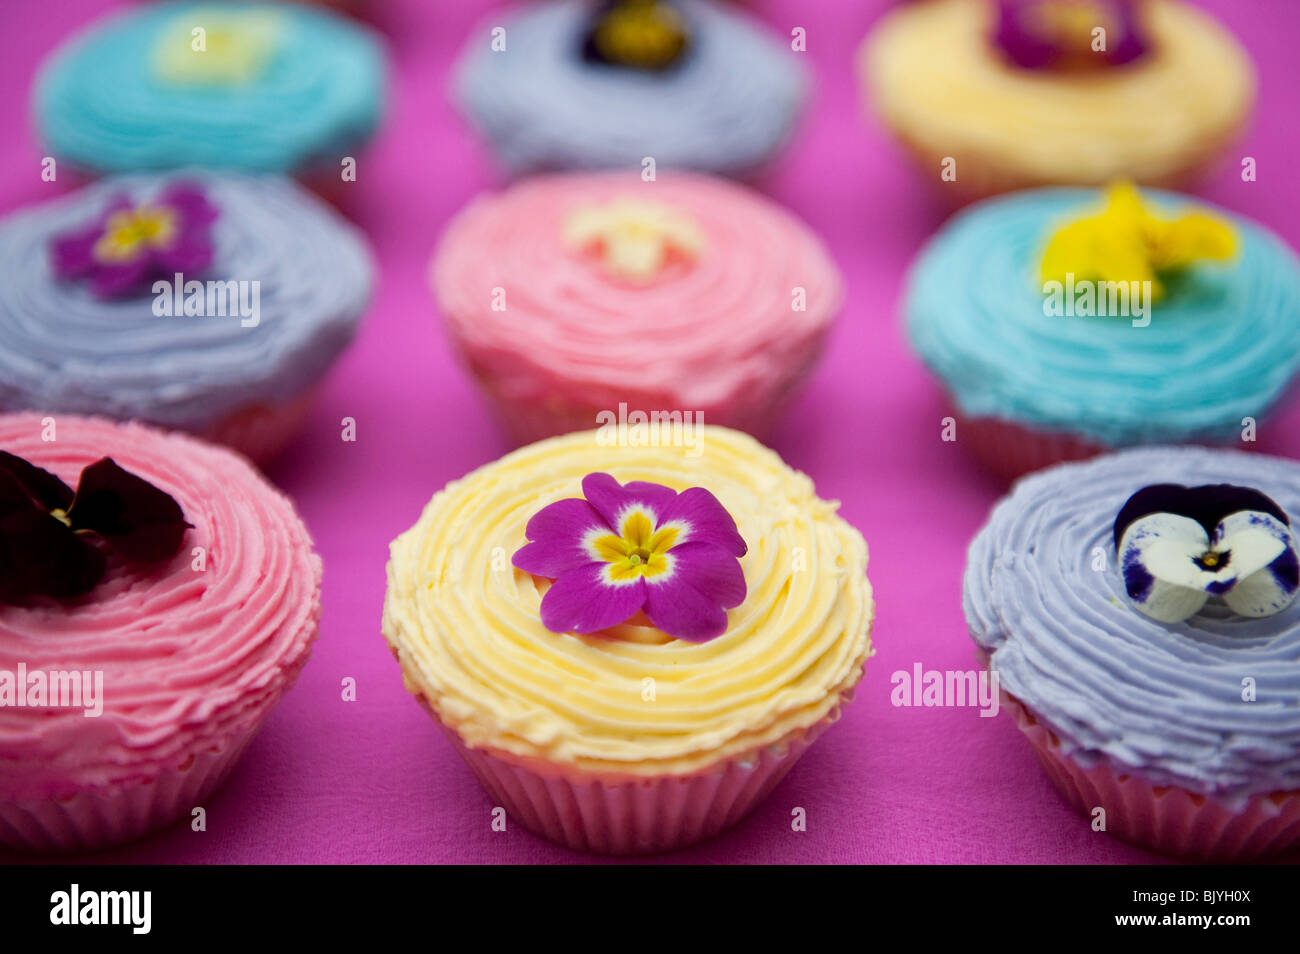 Cupcakes colorés et comestibles fleurs de printemps Photo Stock